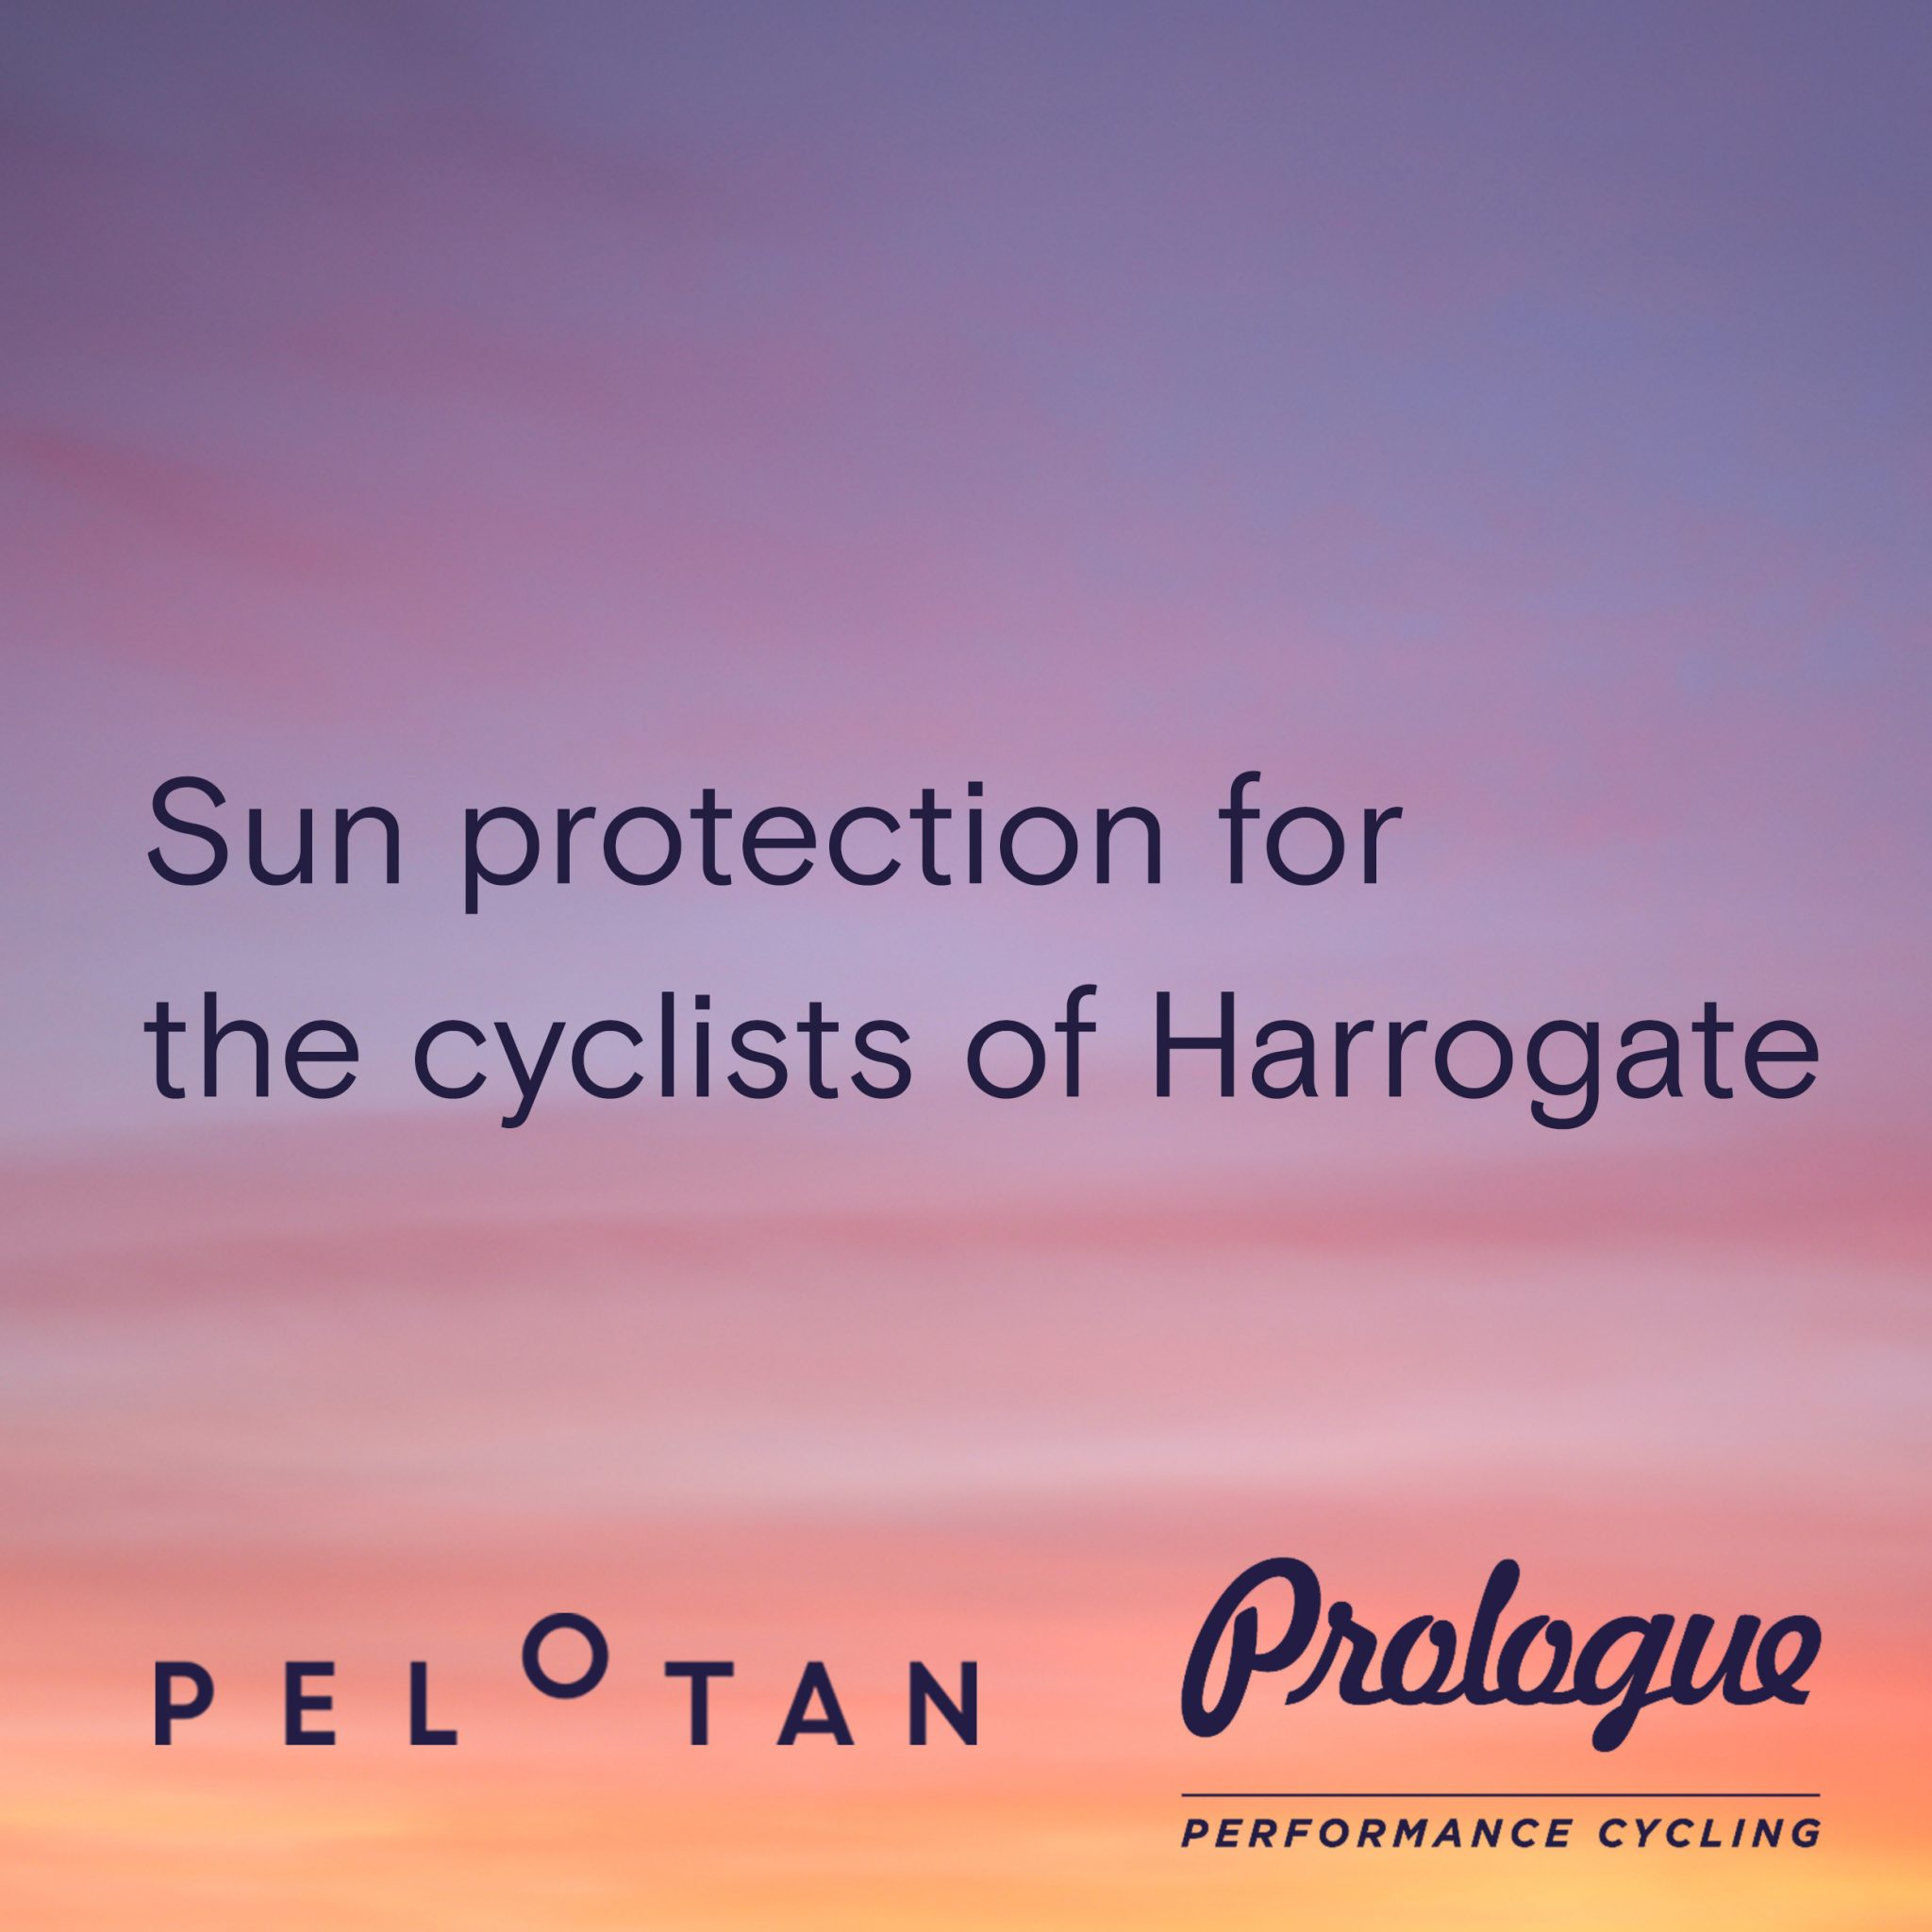 Pelotan Stockist Prologue performance cycling